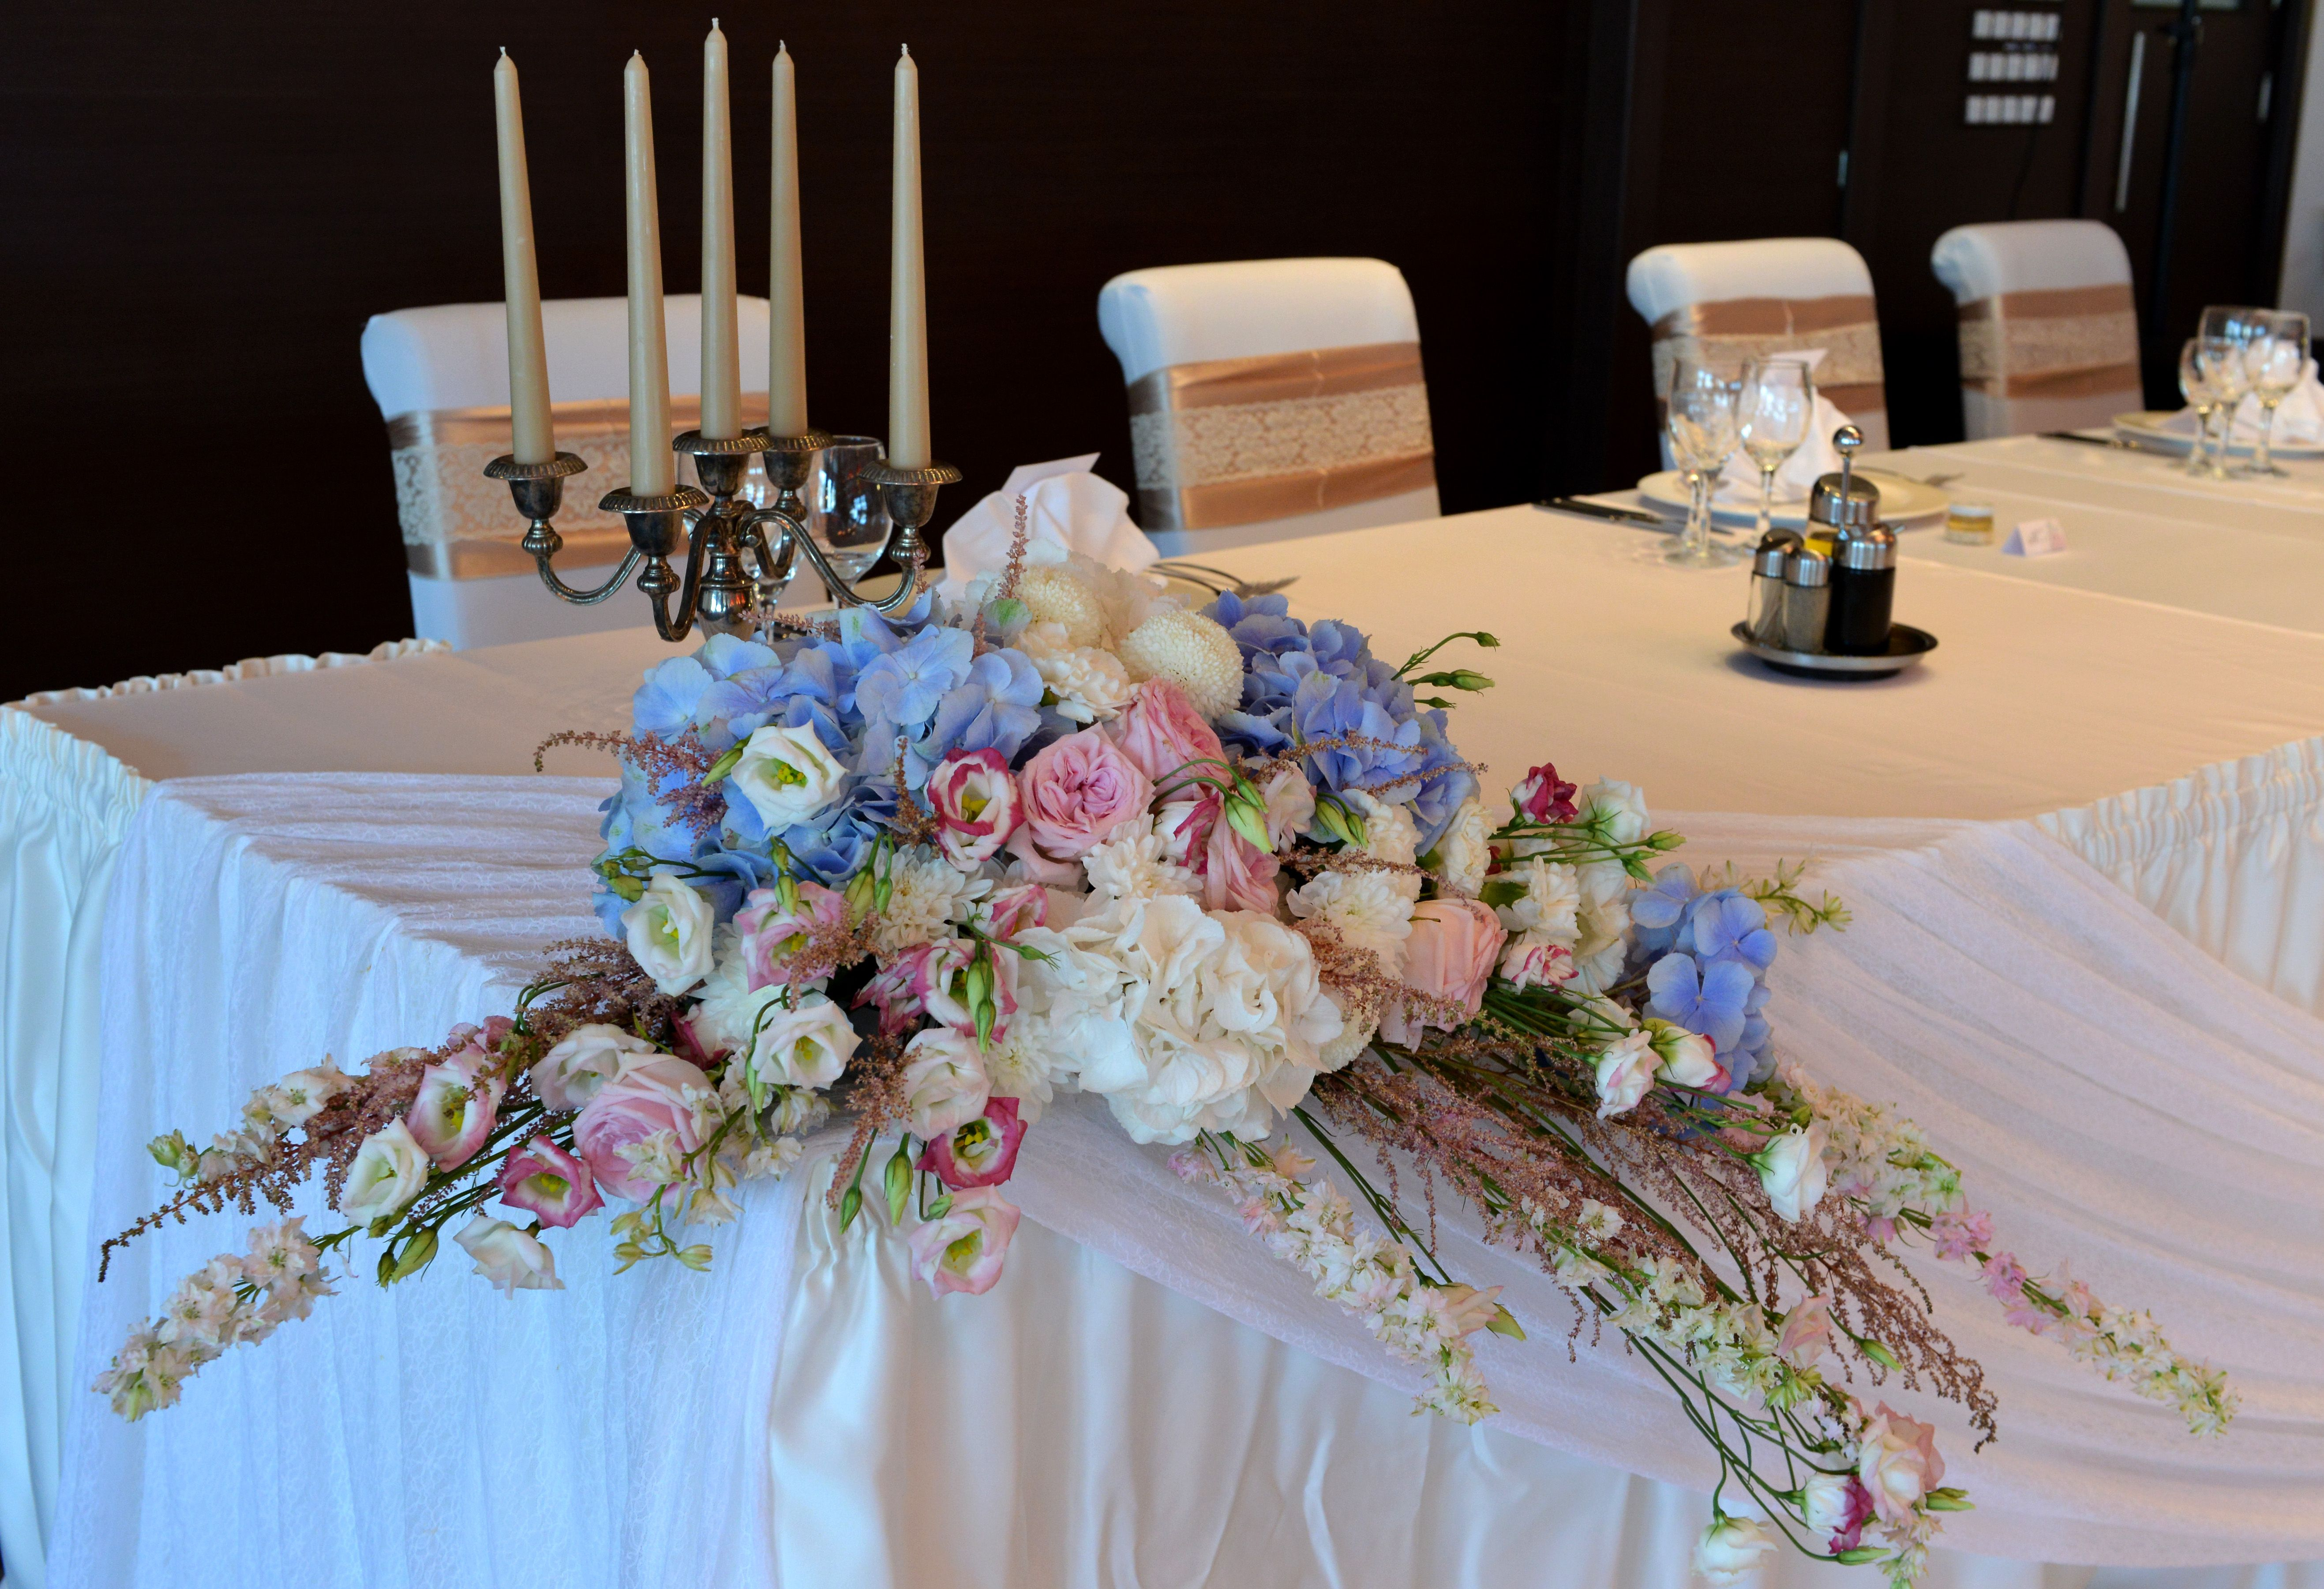 Vintage wedding decoration by pertito flower arrangement top table vintage wedding decoration by pertito flower arrangement top table wedding reception by wedding agency junglespirit Choice Image